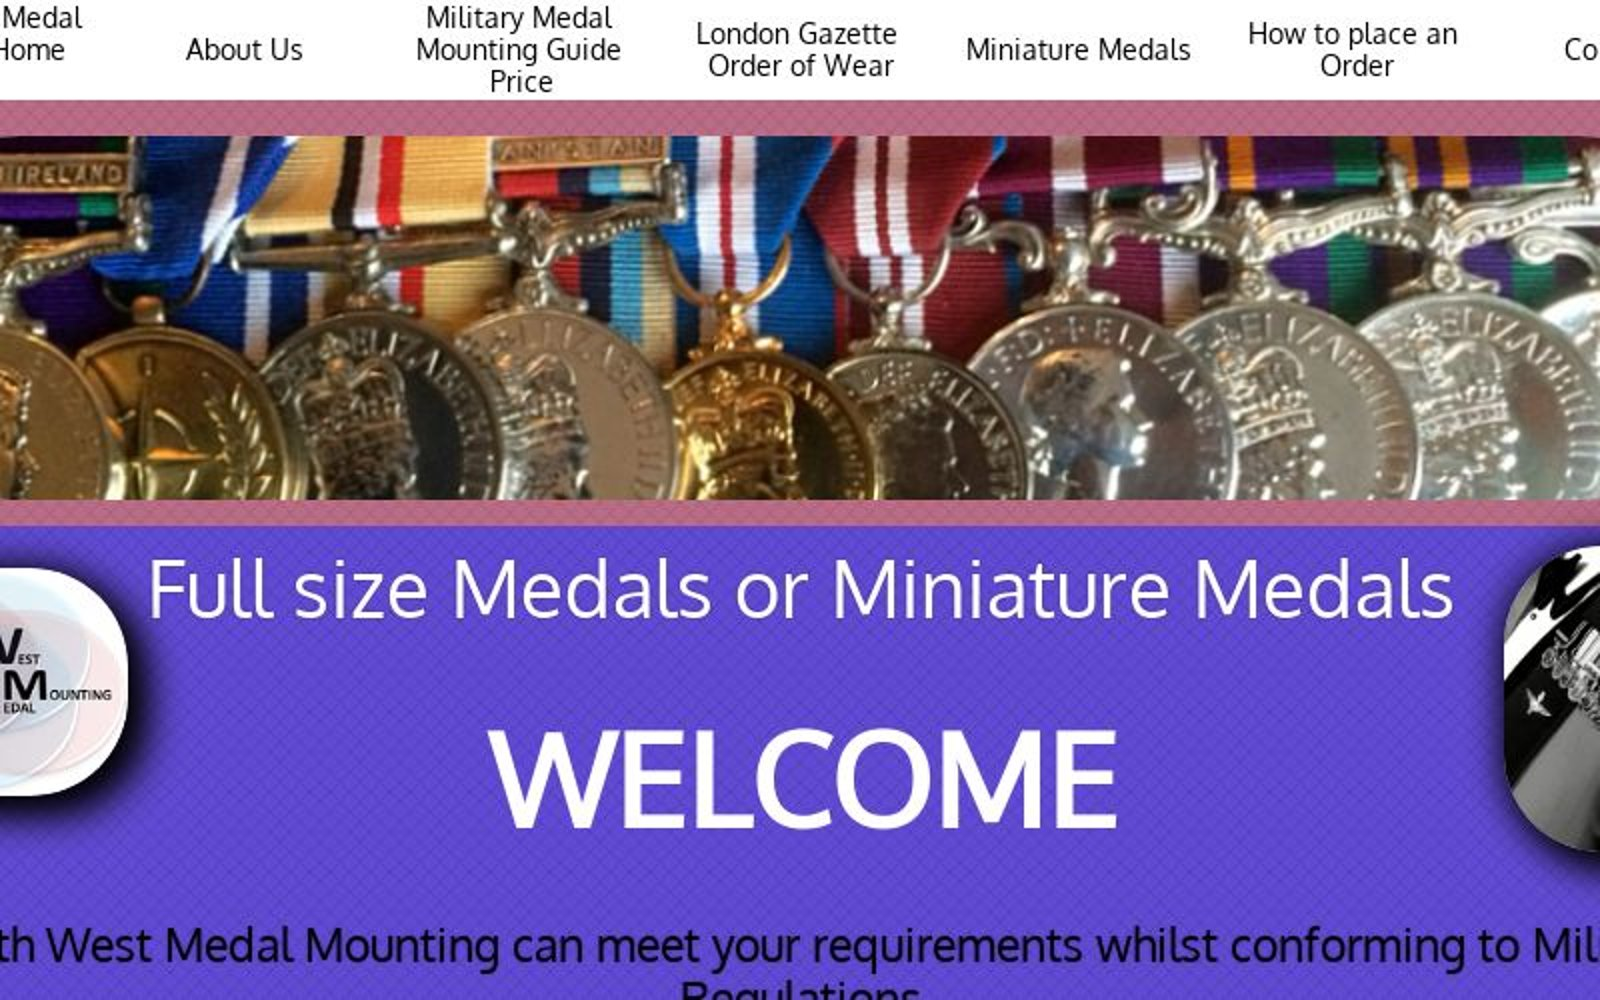 Military Medal Mounting Guide Price